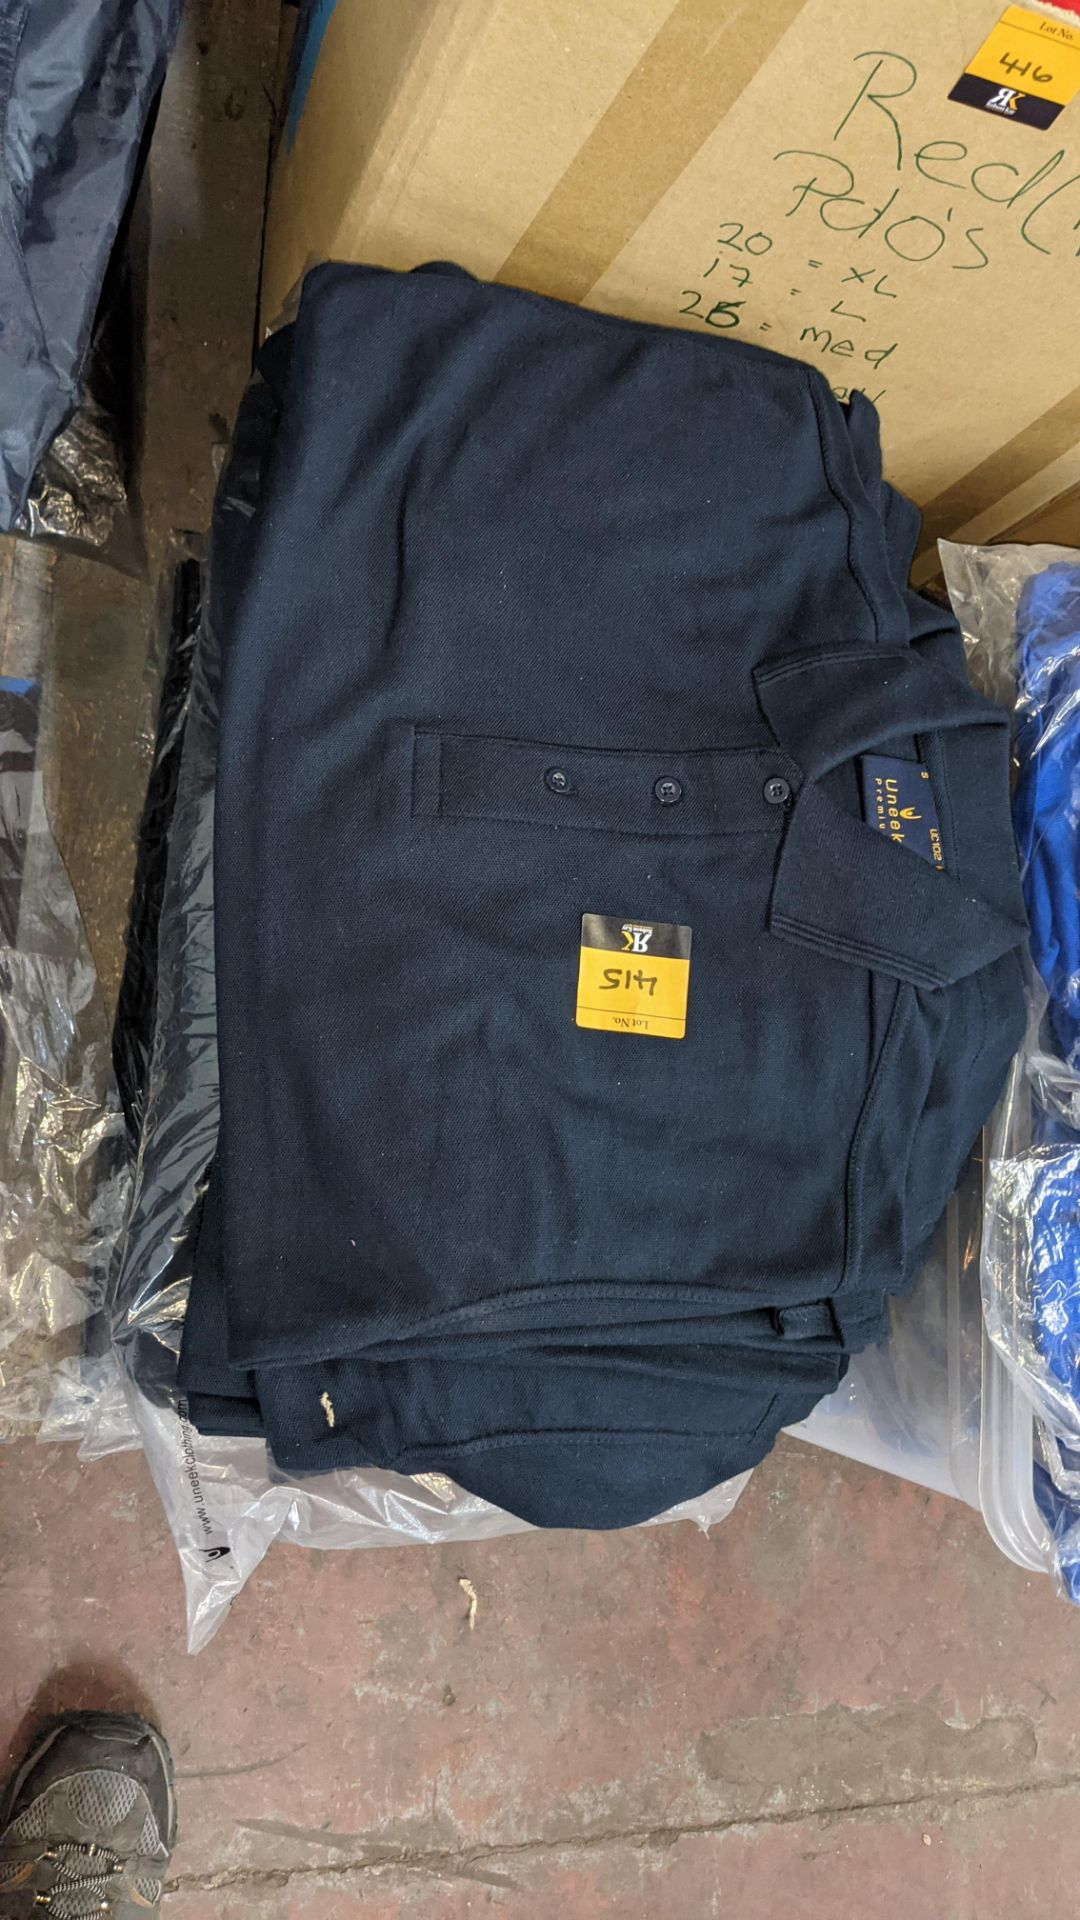 Approx 50 off Uneek dark blue polo shirts - Image 2 of 4